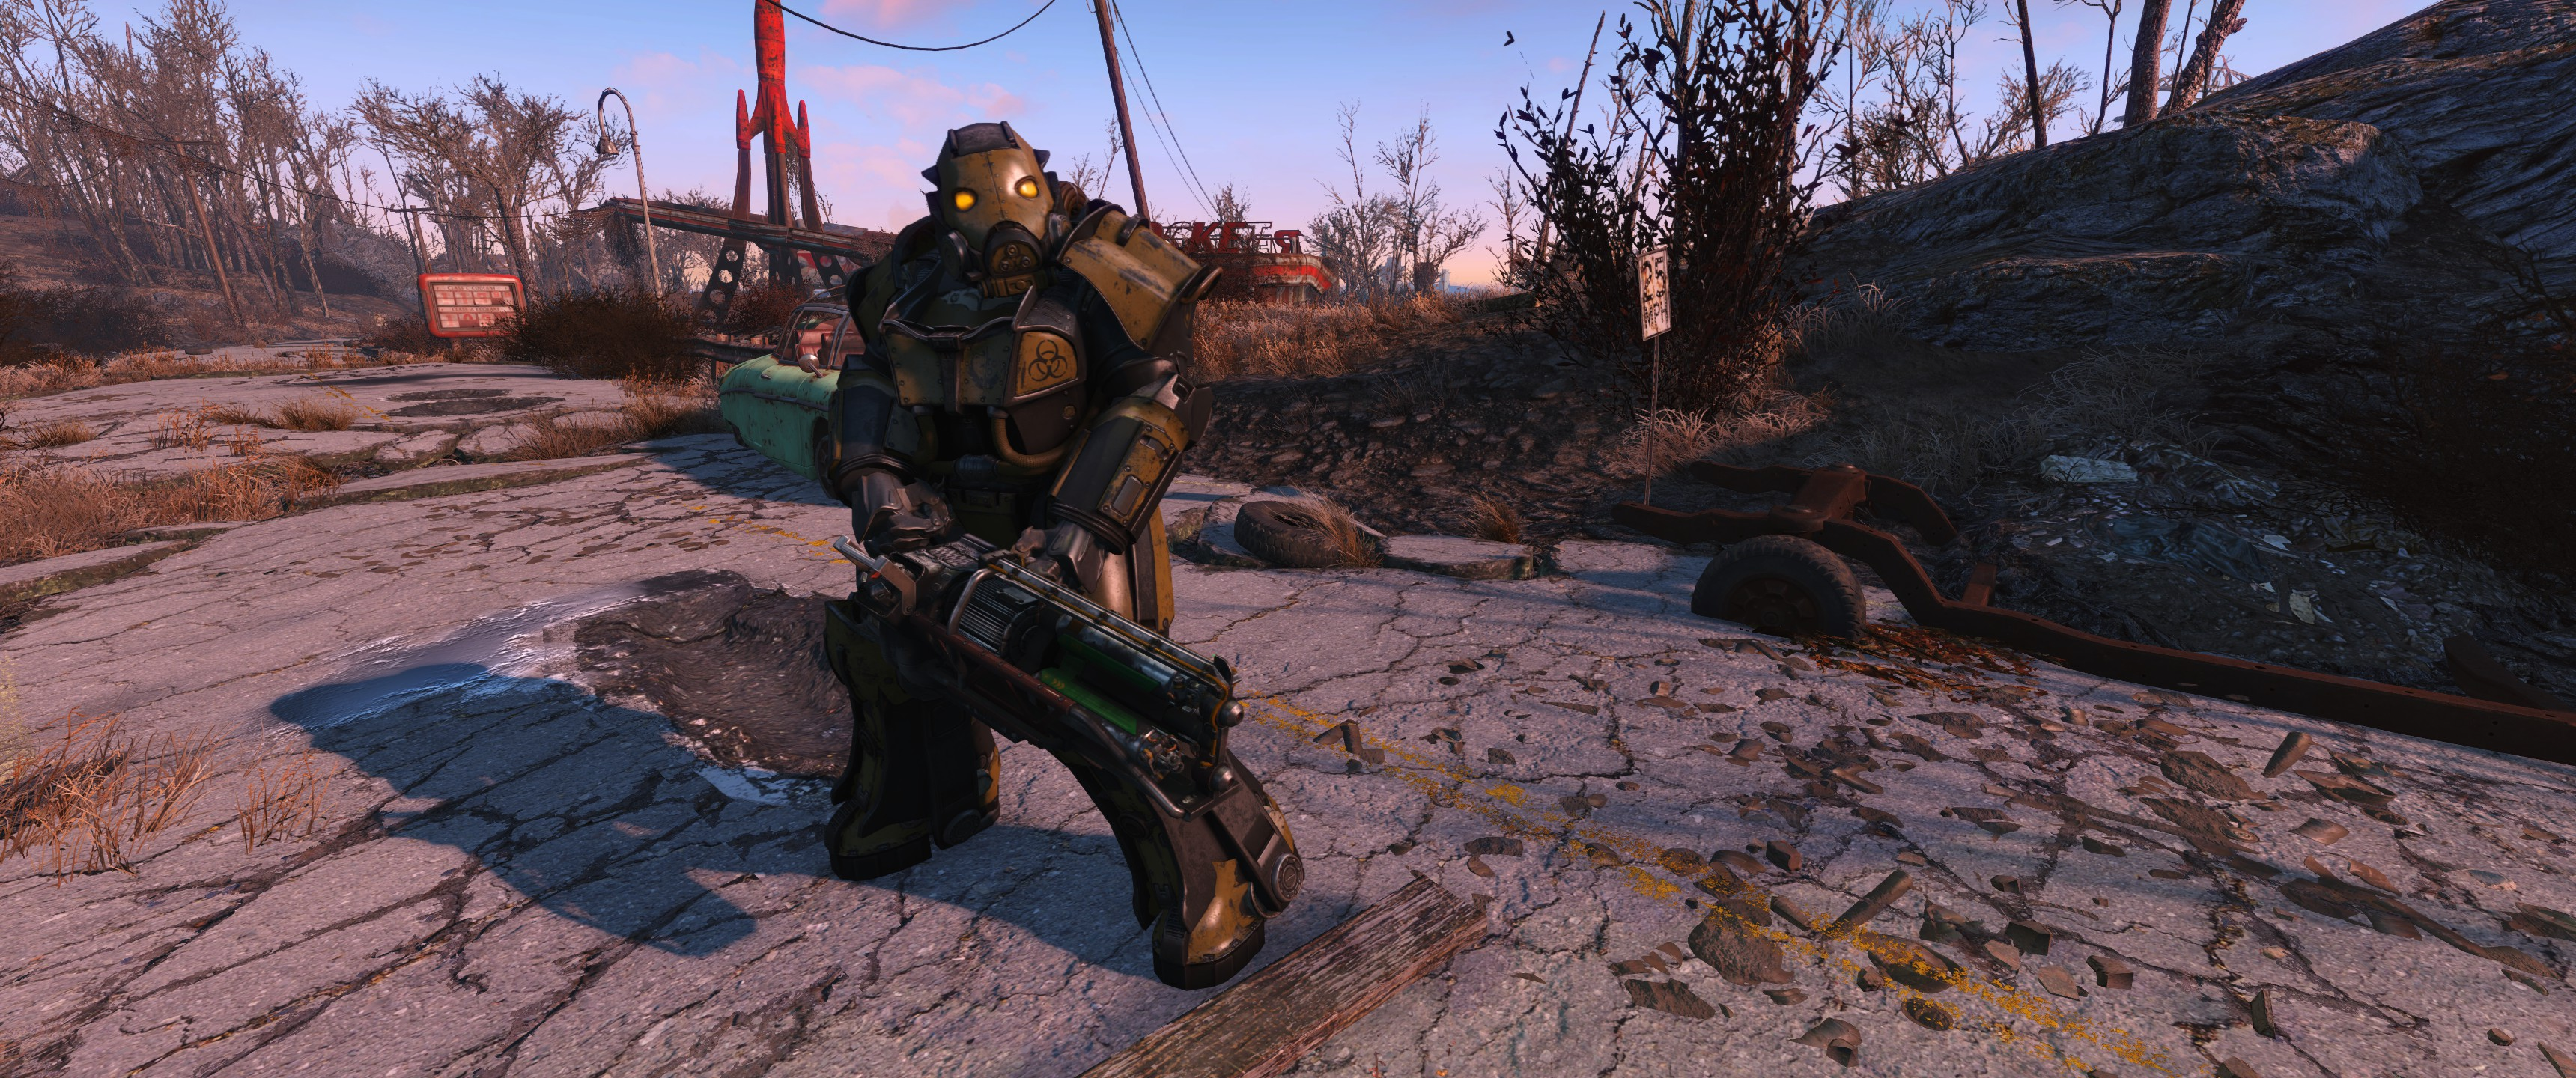 Hellfire X 03 Power Armor At Fallout 4 Nexus Mods And